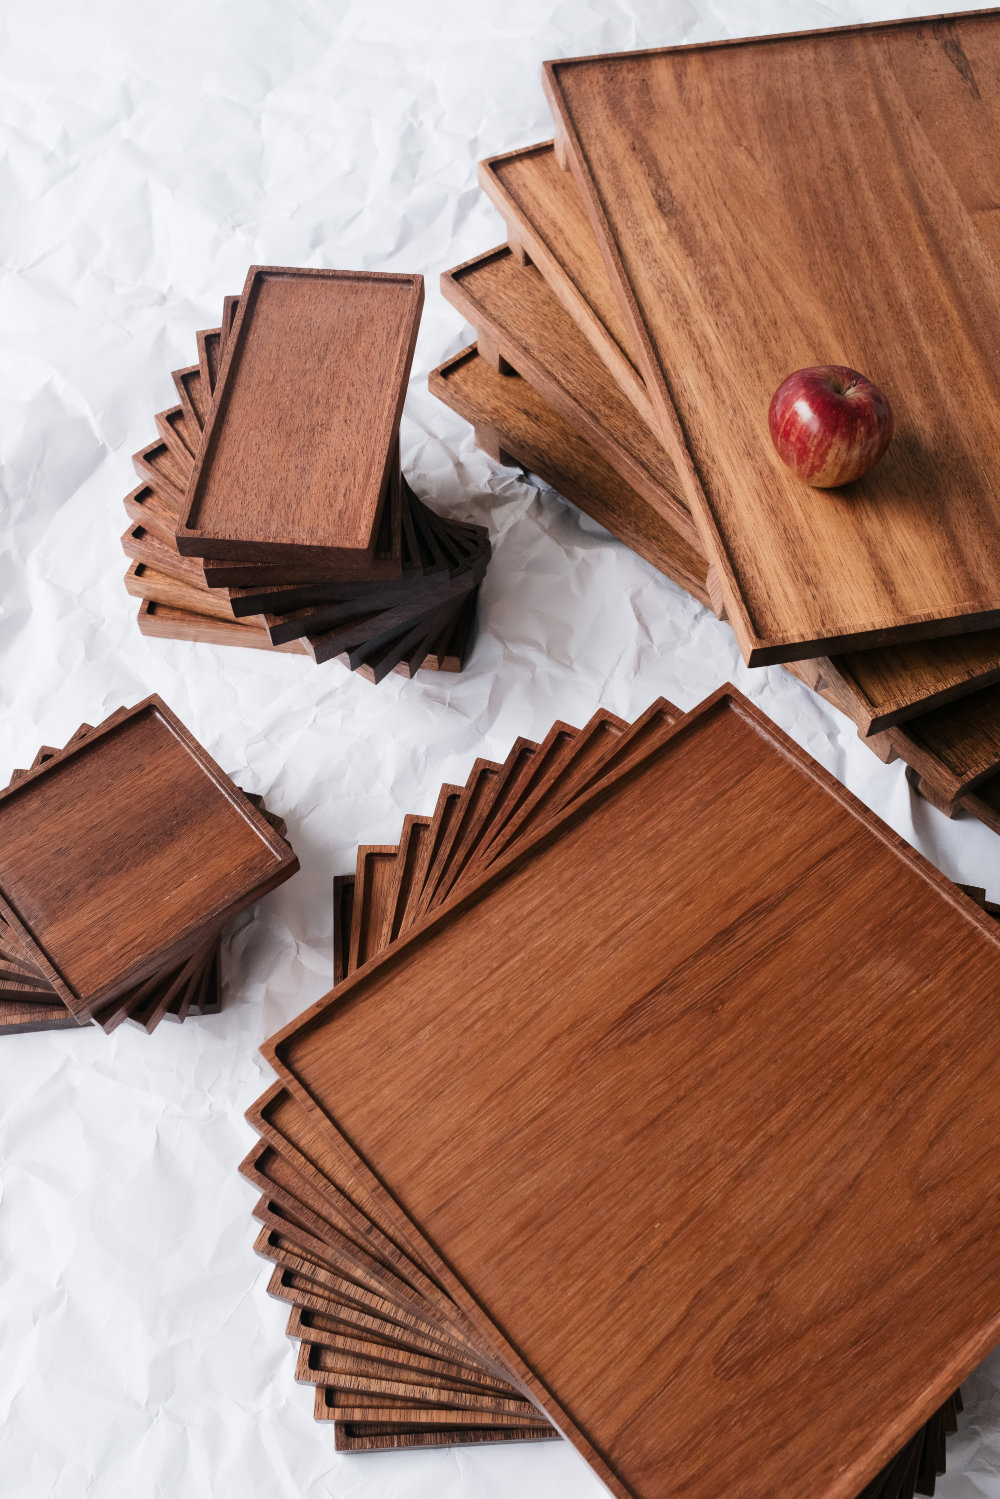 Wooden serving trays of various sizes